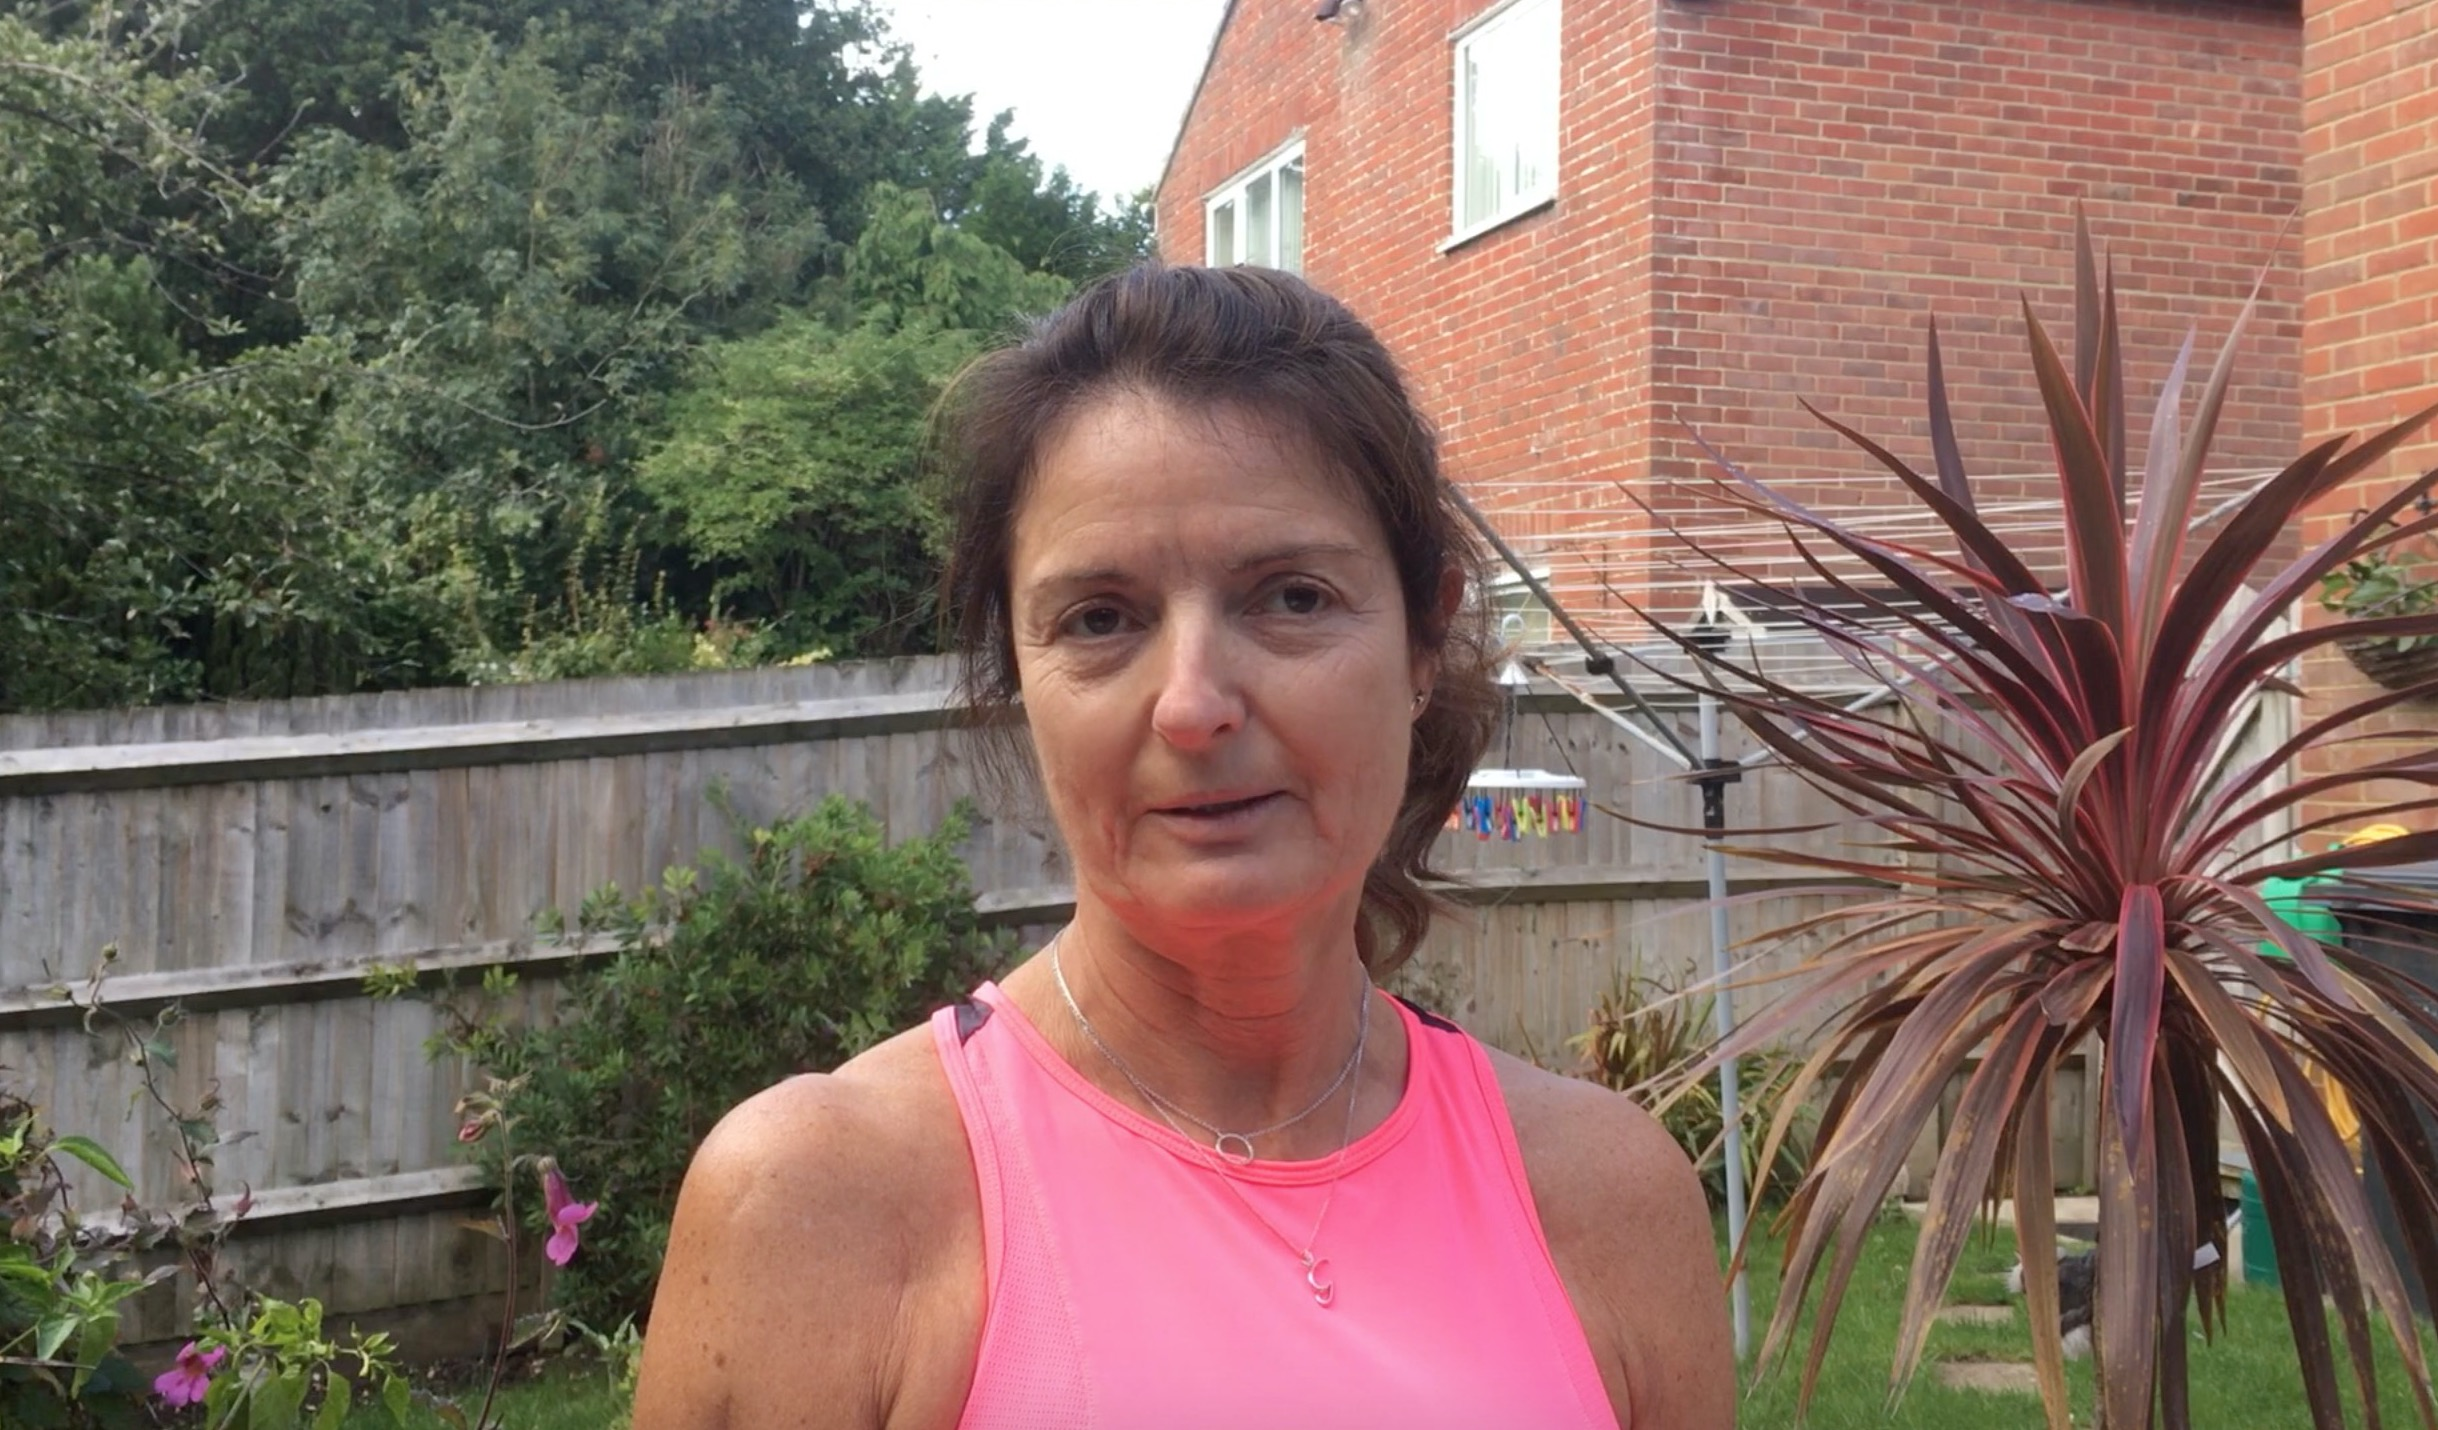 Gaynor Williams talks of her experience with Biospheric Performance after a partial knee replacement